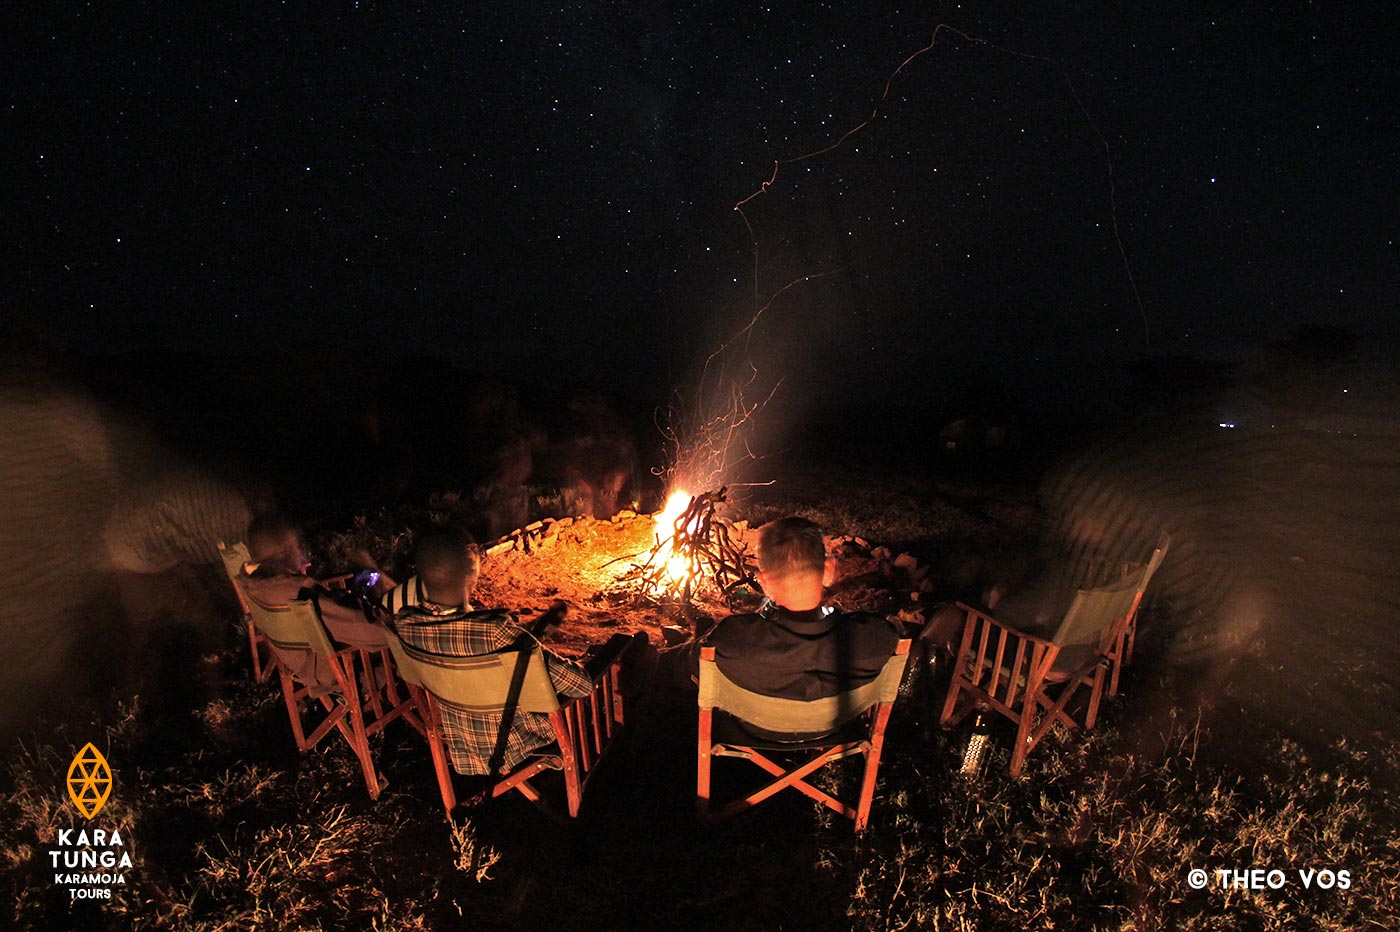 kara-tunga-karamoja-tours-travel-safari-fly-bush-camp-site-